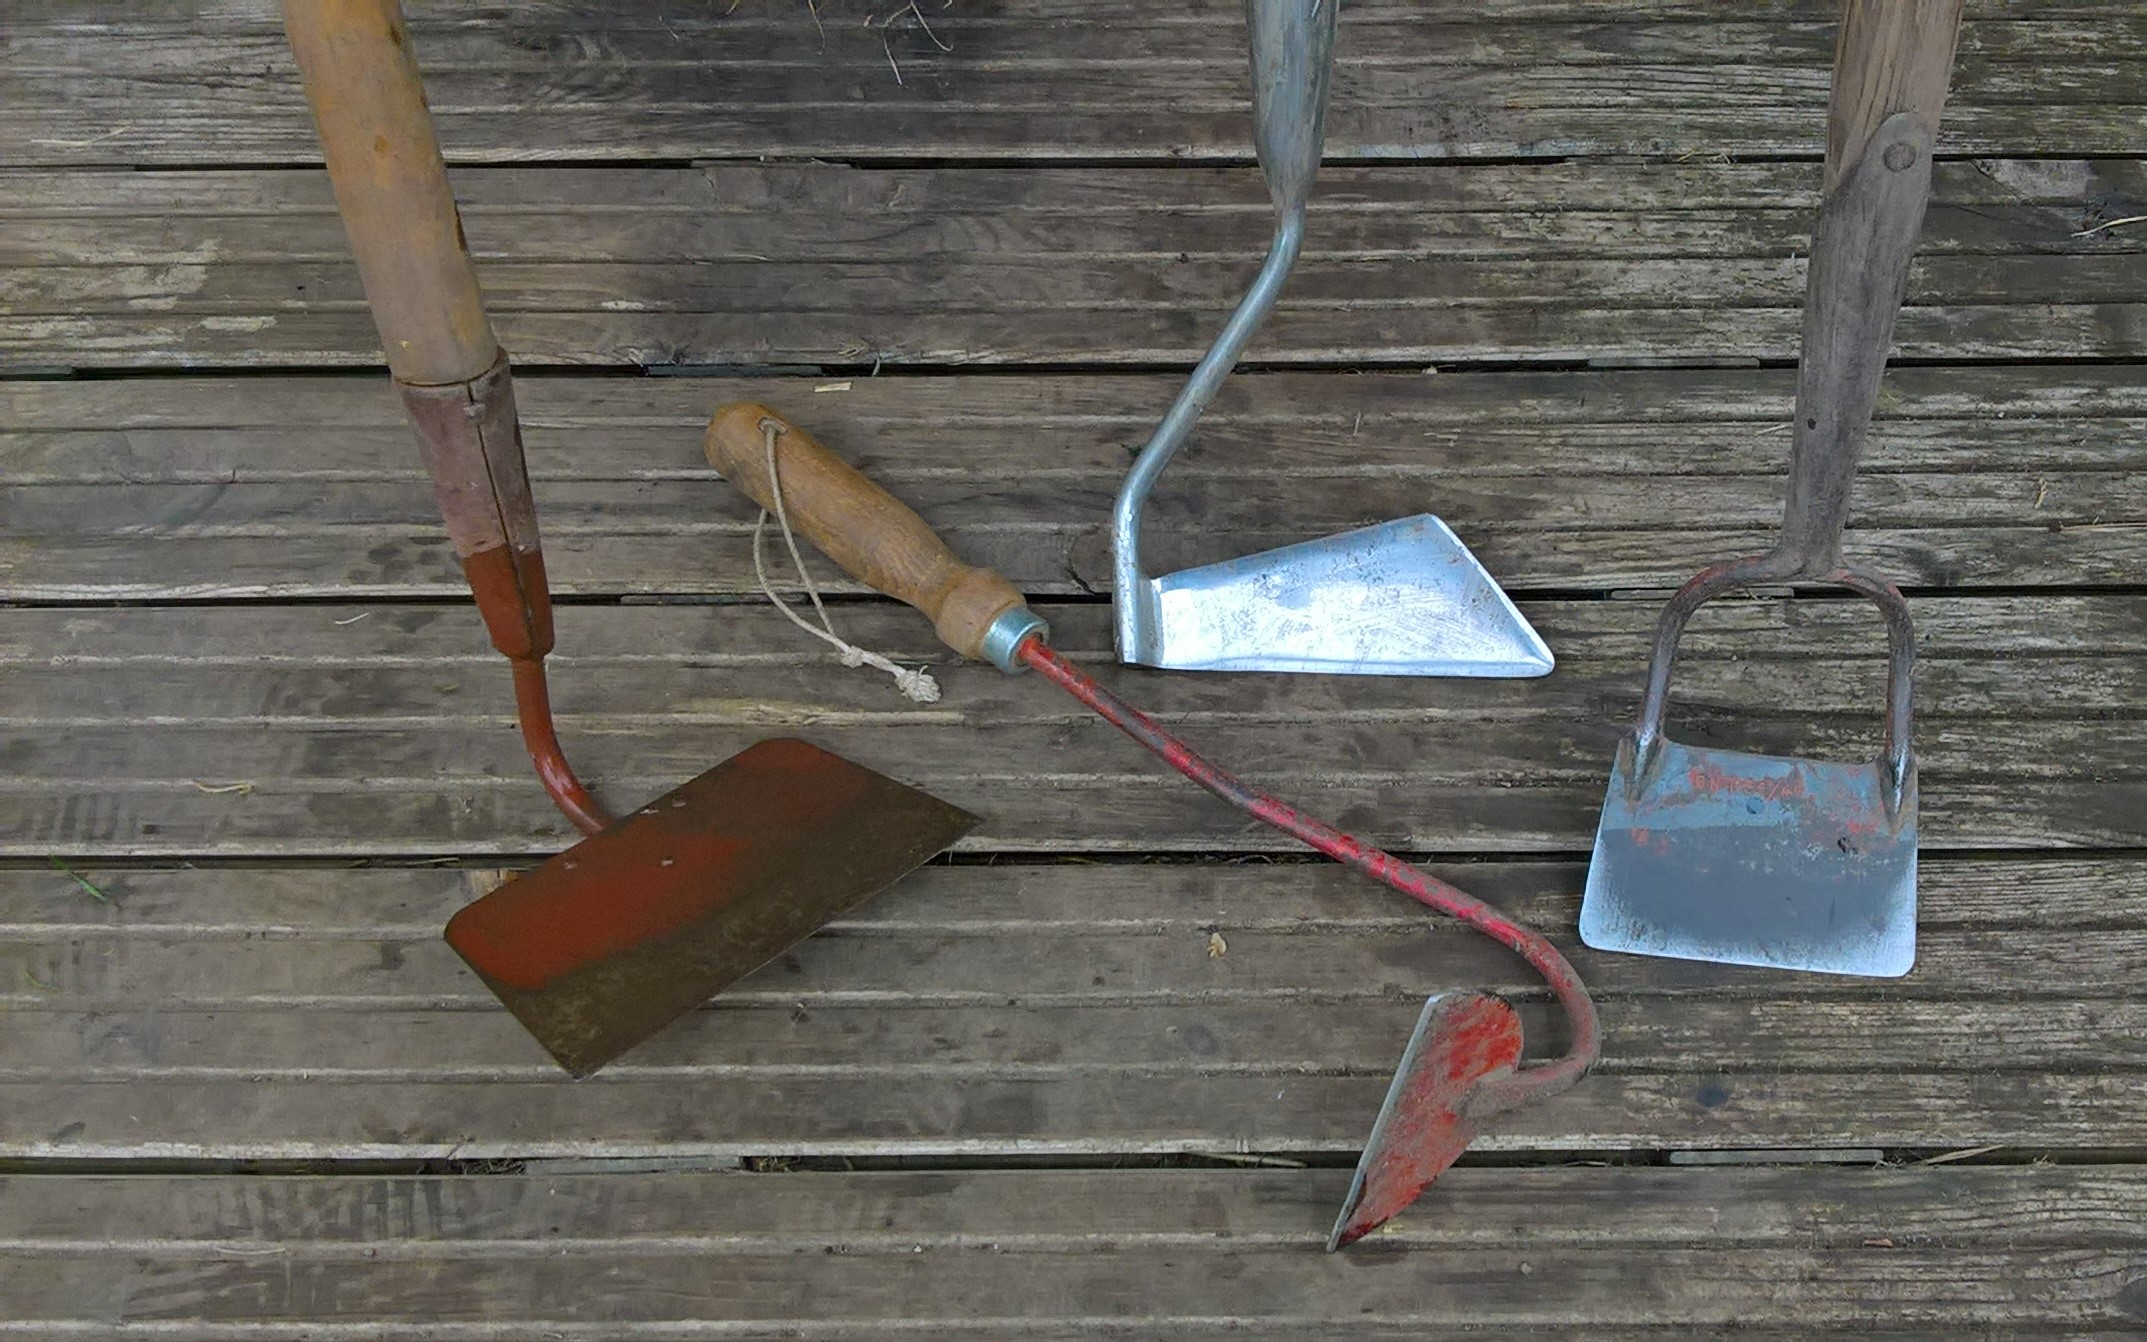 Time for some humdrum gardening: how to hoe